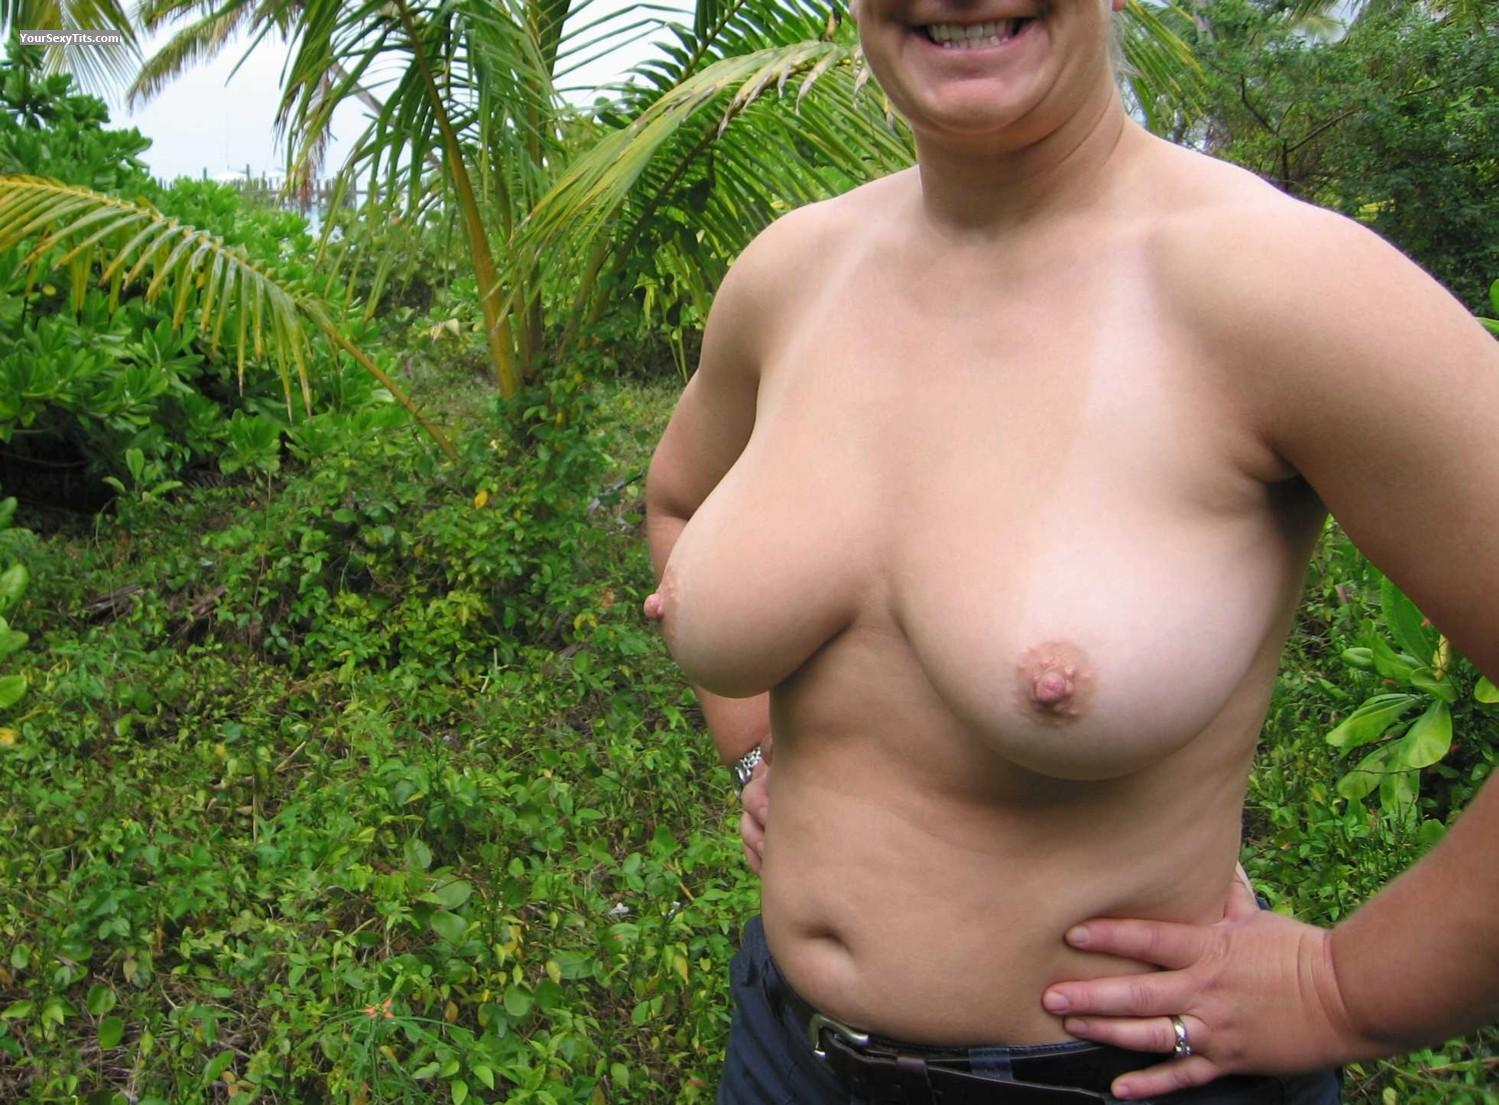 Tit Flash: Medium Tits - Faans Flasher from United States